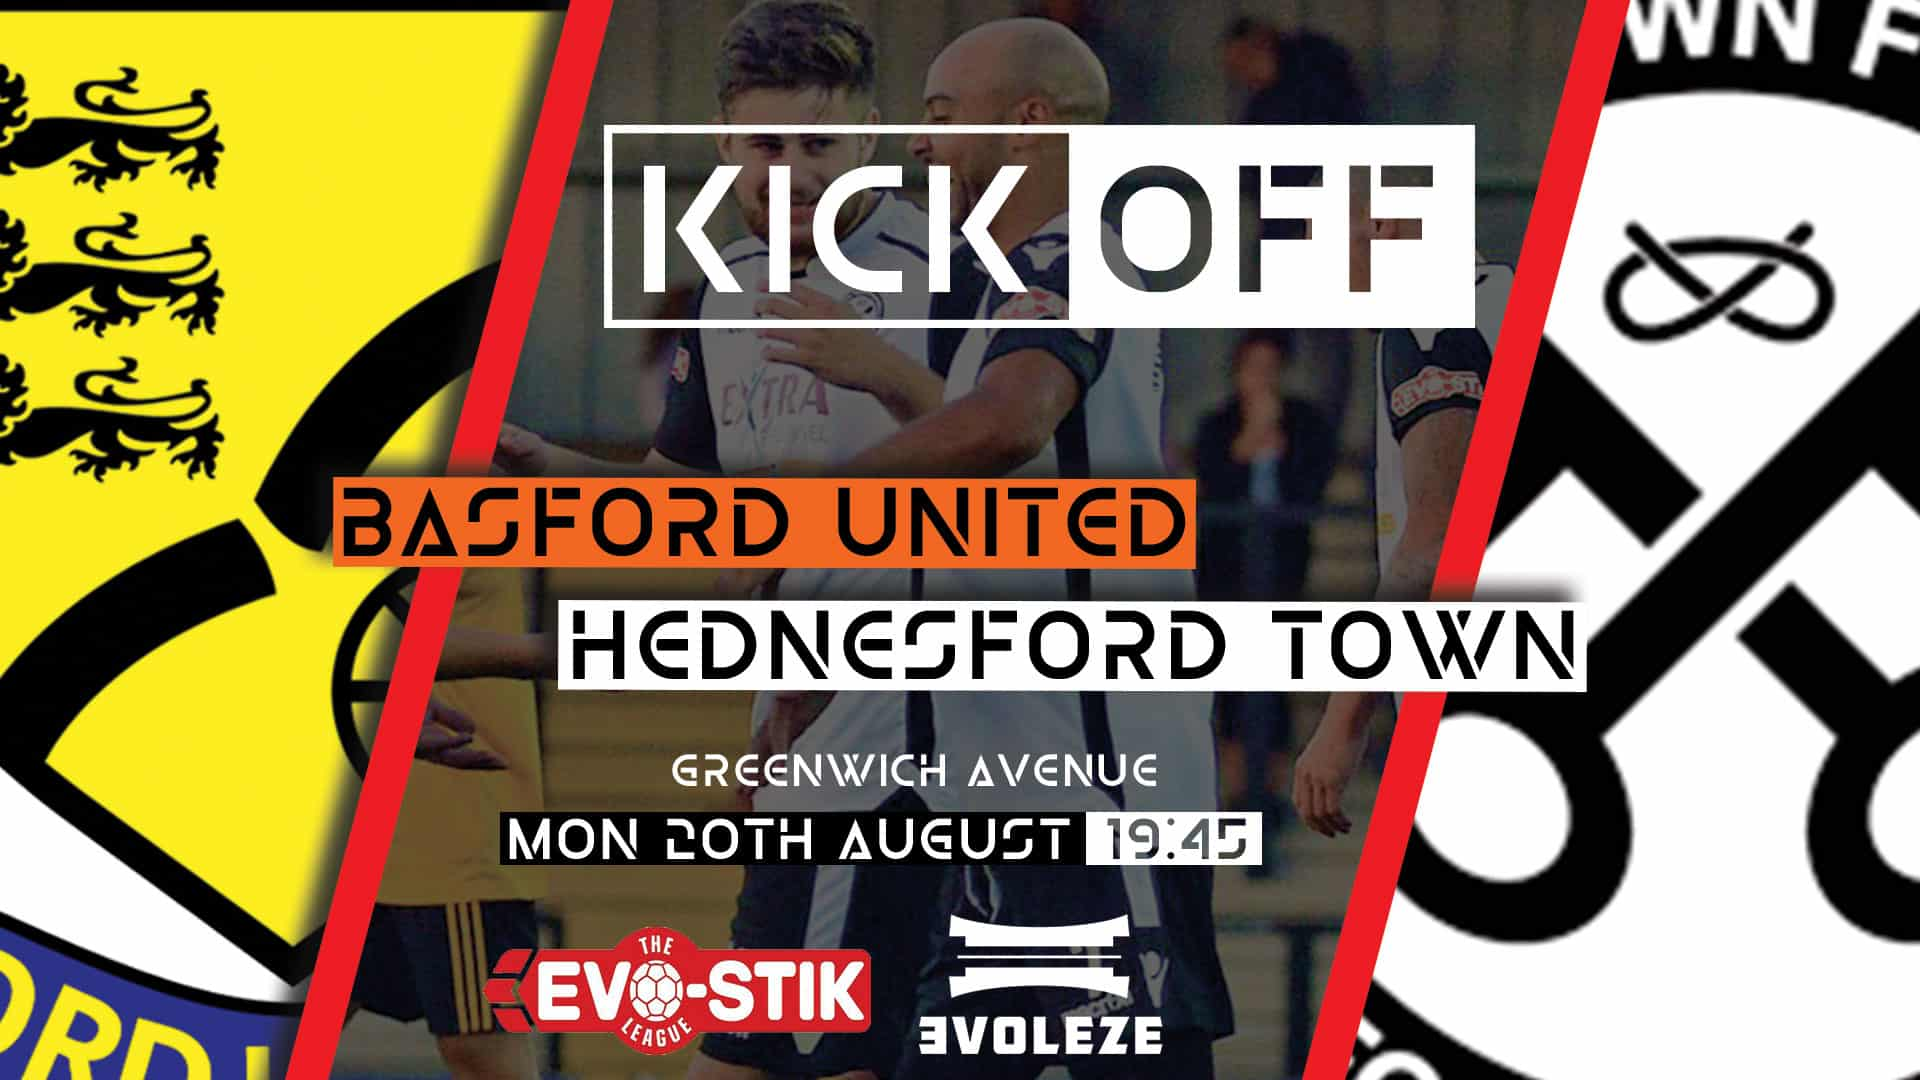 kick off Hednesford Town FC